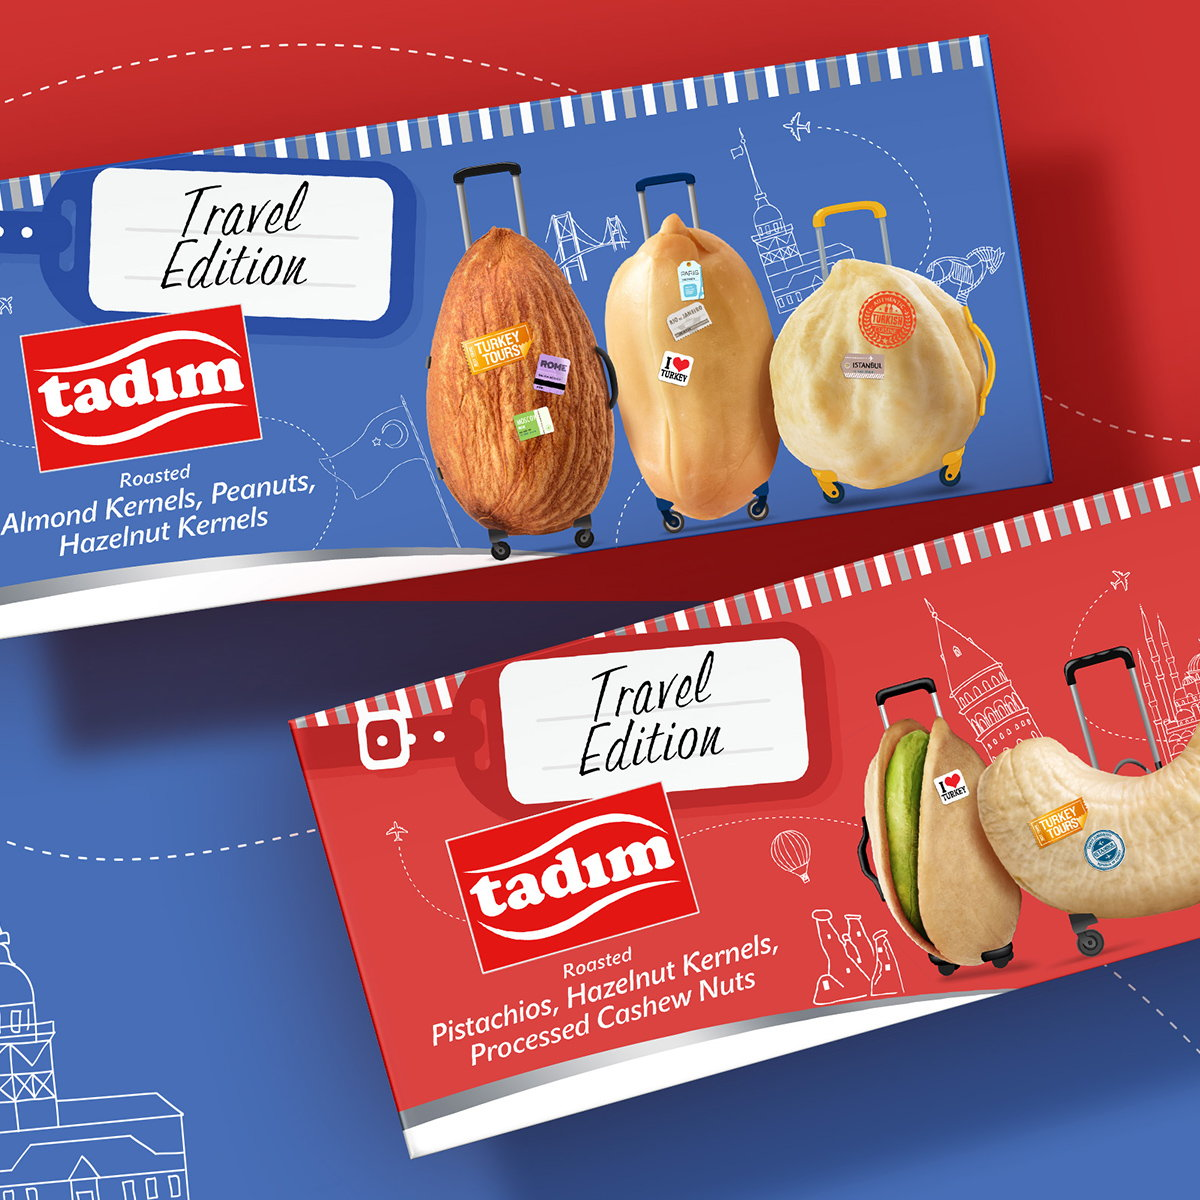 Orhan Irmak Designs Travel Edition Packaging for Tadim